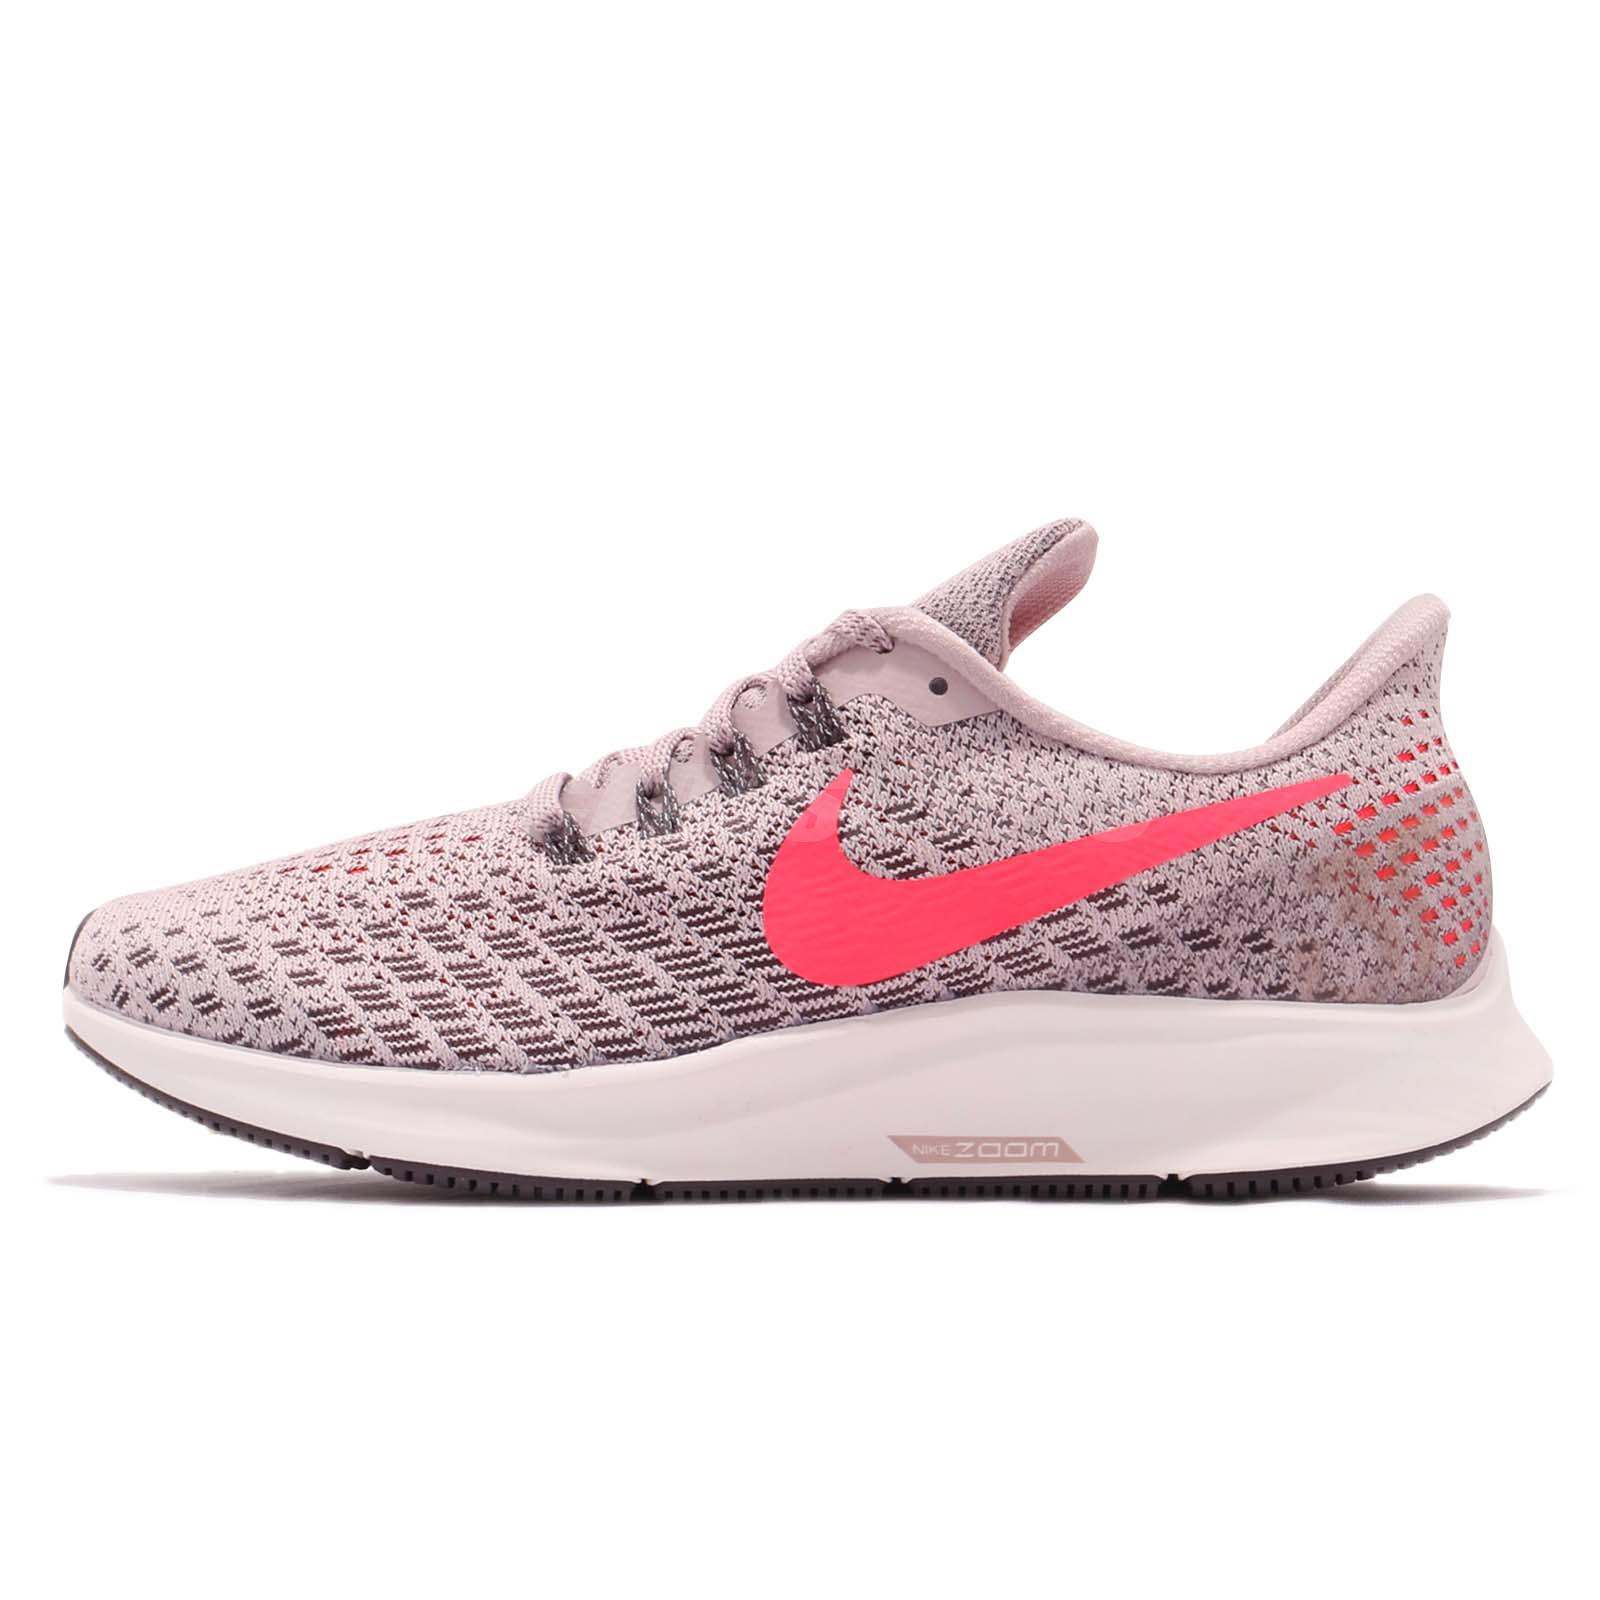 Nike Wmns Air Zoom Pegasus 35 Particle Rose Women Running Shoes 942855-602 bd2931736de8e